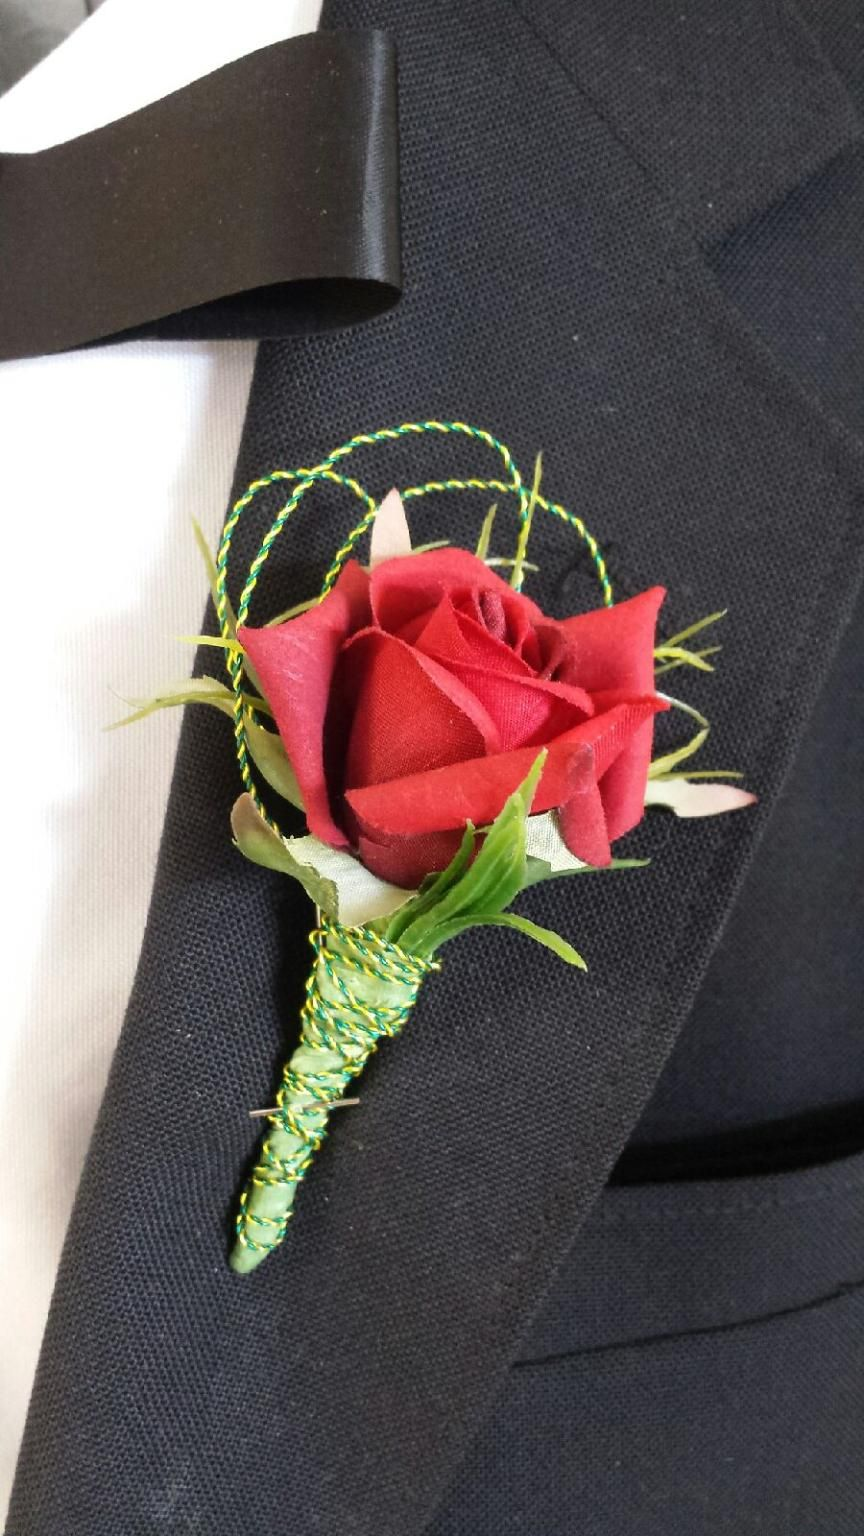 Green Wire Red Rose Boutonniere Data Wiring Testandmeasurement Transistoranddiodetester Mosfetcircuitups Sample Silk Single With Wrapped Stems And Rh Pinterest Com Black White